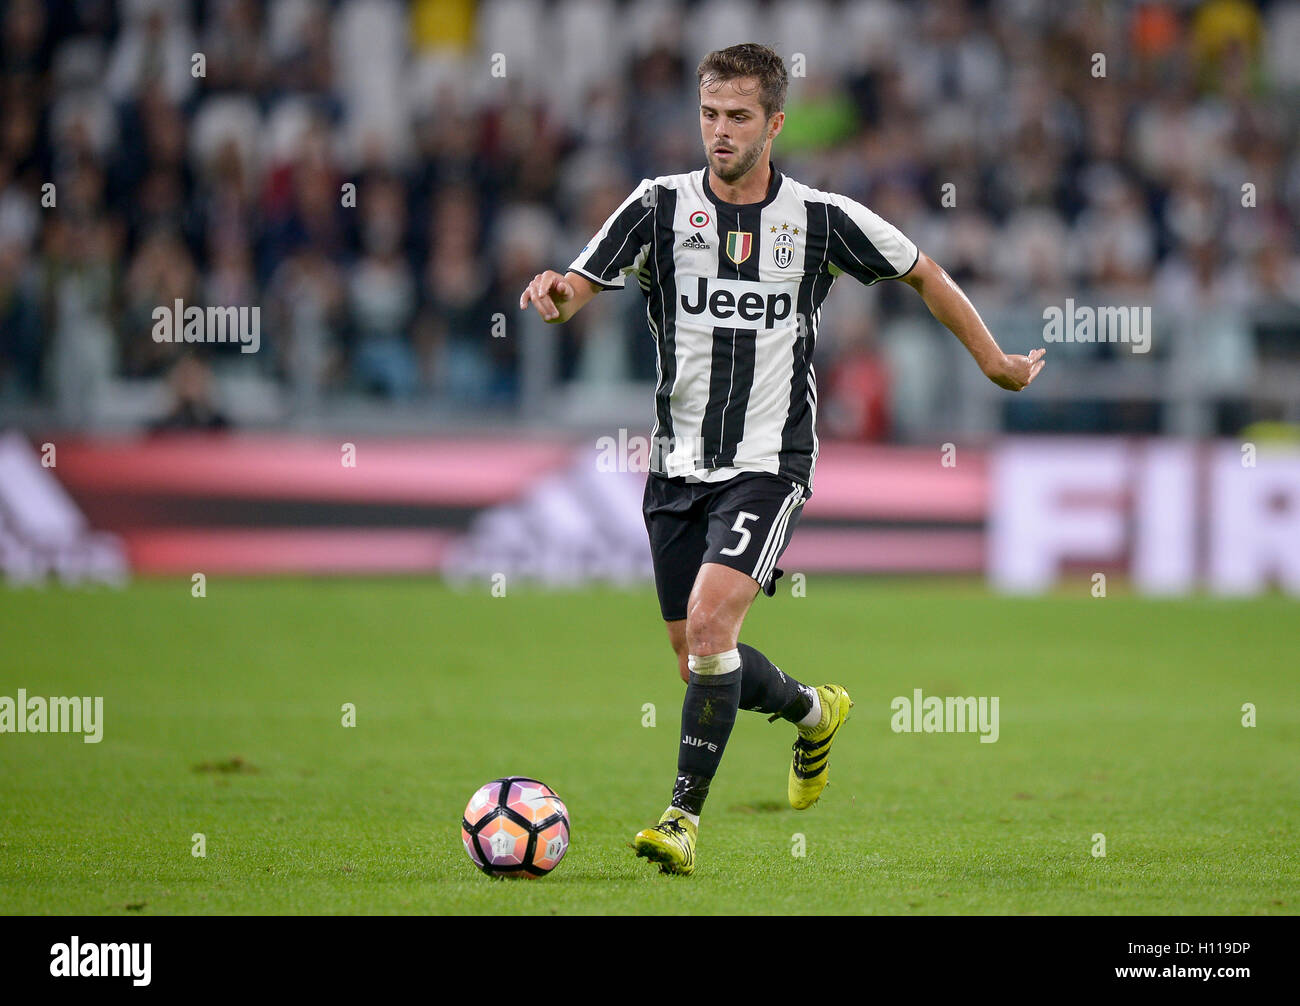 Turin Italy 21st Sep 2016 Miralem Pjanic of Juventus FC in